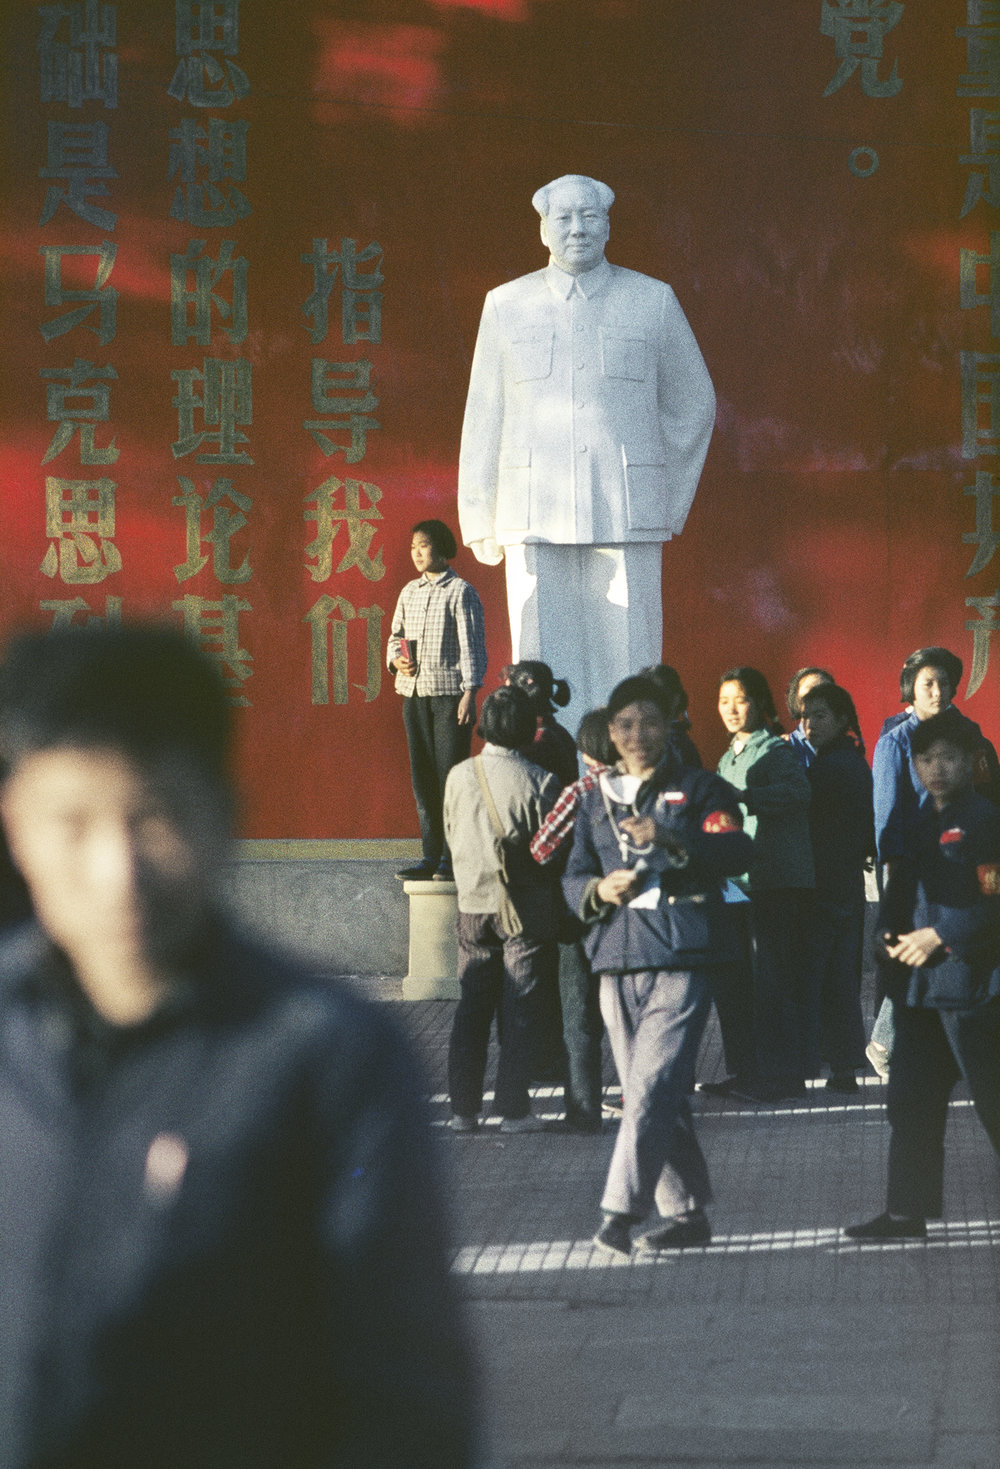 SOLANGE BRAND,  Untitled  (students having their photograph taken in front of a statue of Mao Zedong in Beihai Park), Beijing, China, November, 1966